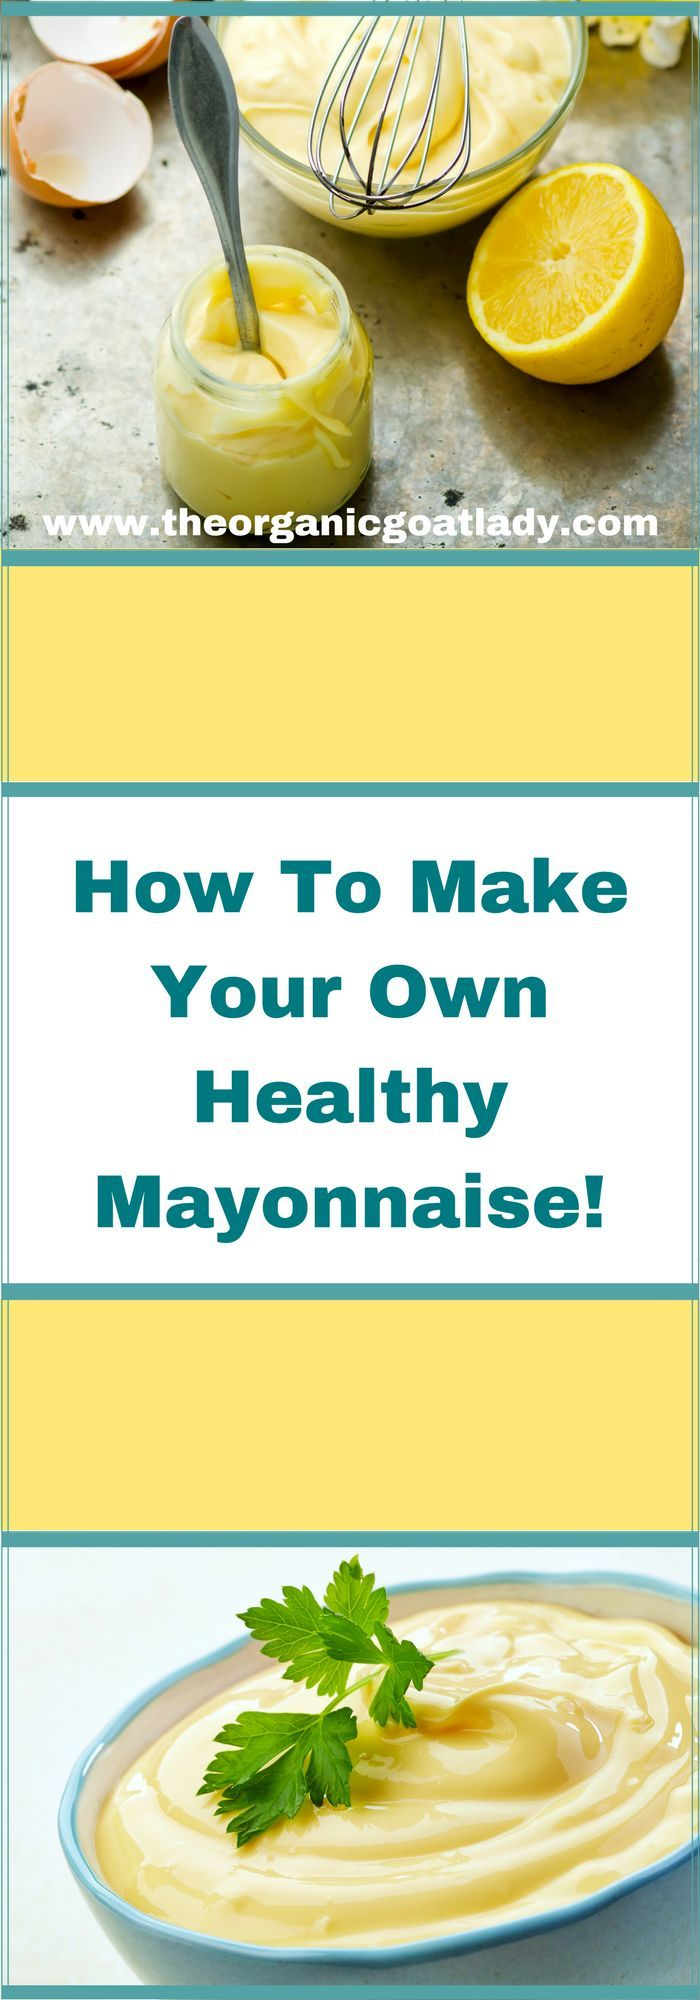 How To Make Your Own Healthy Mayonnaise!